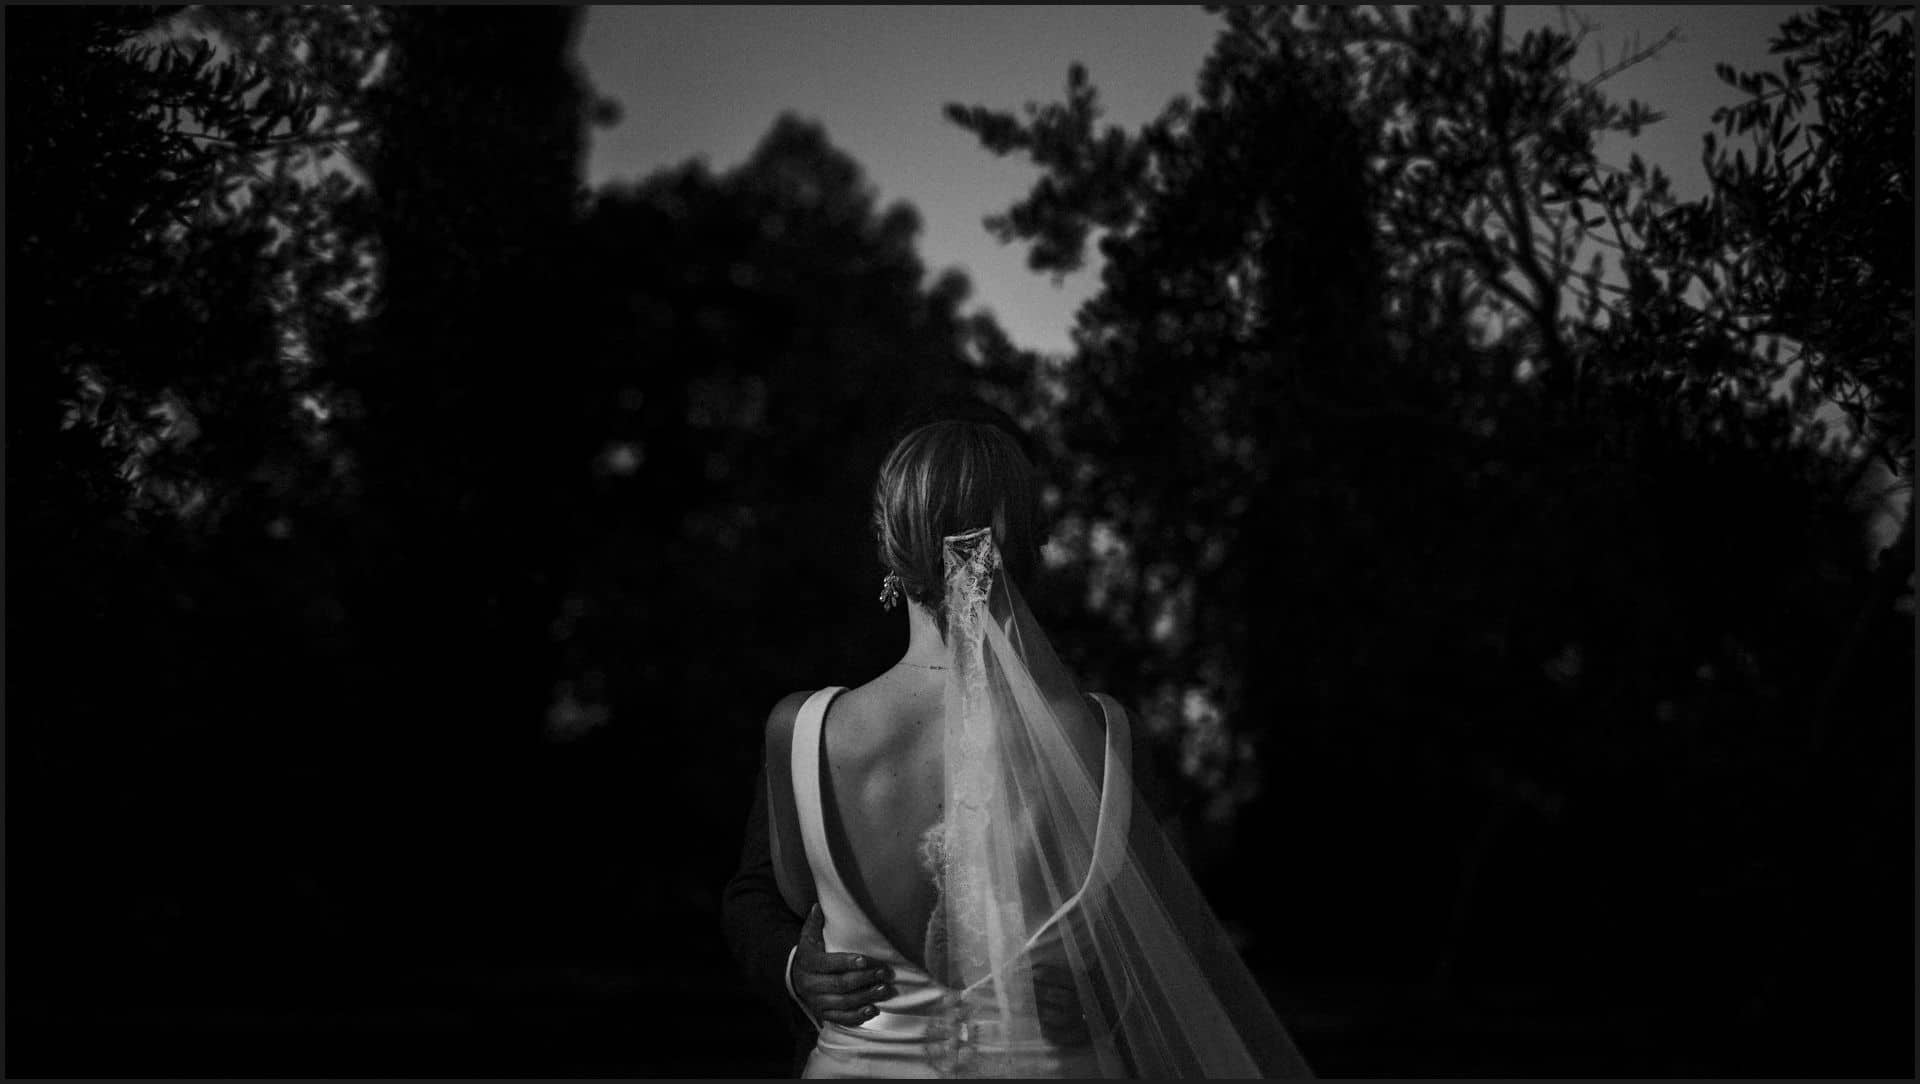 umbria, wedding, bride, black and white